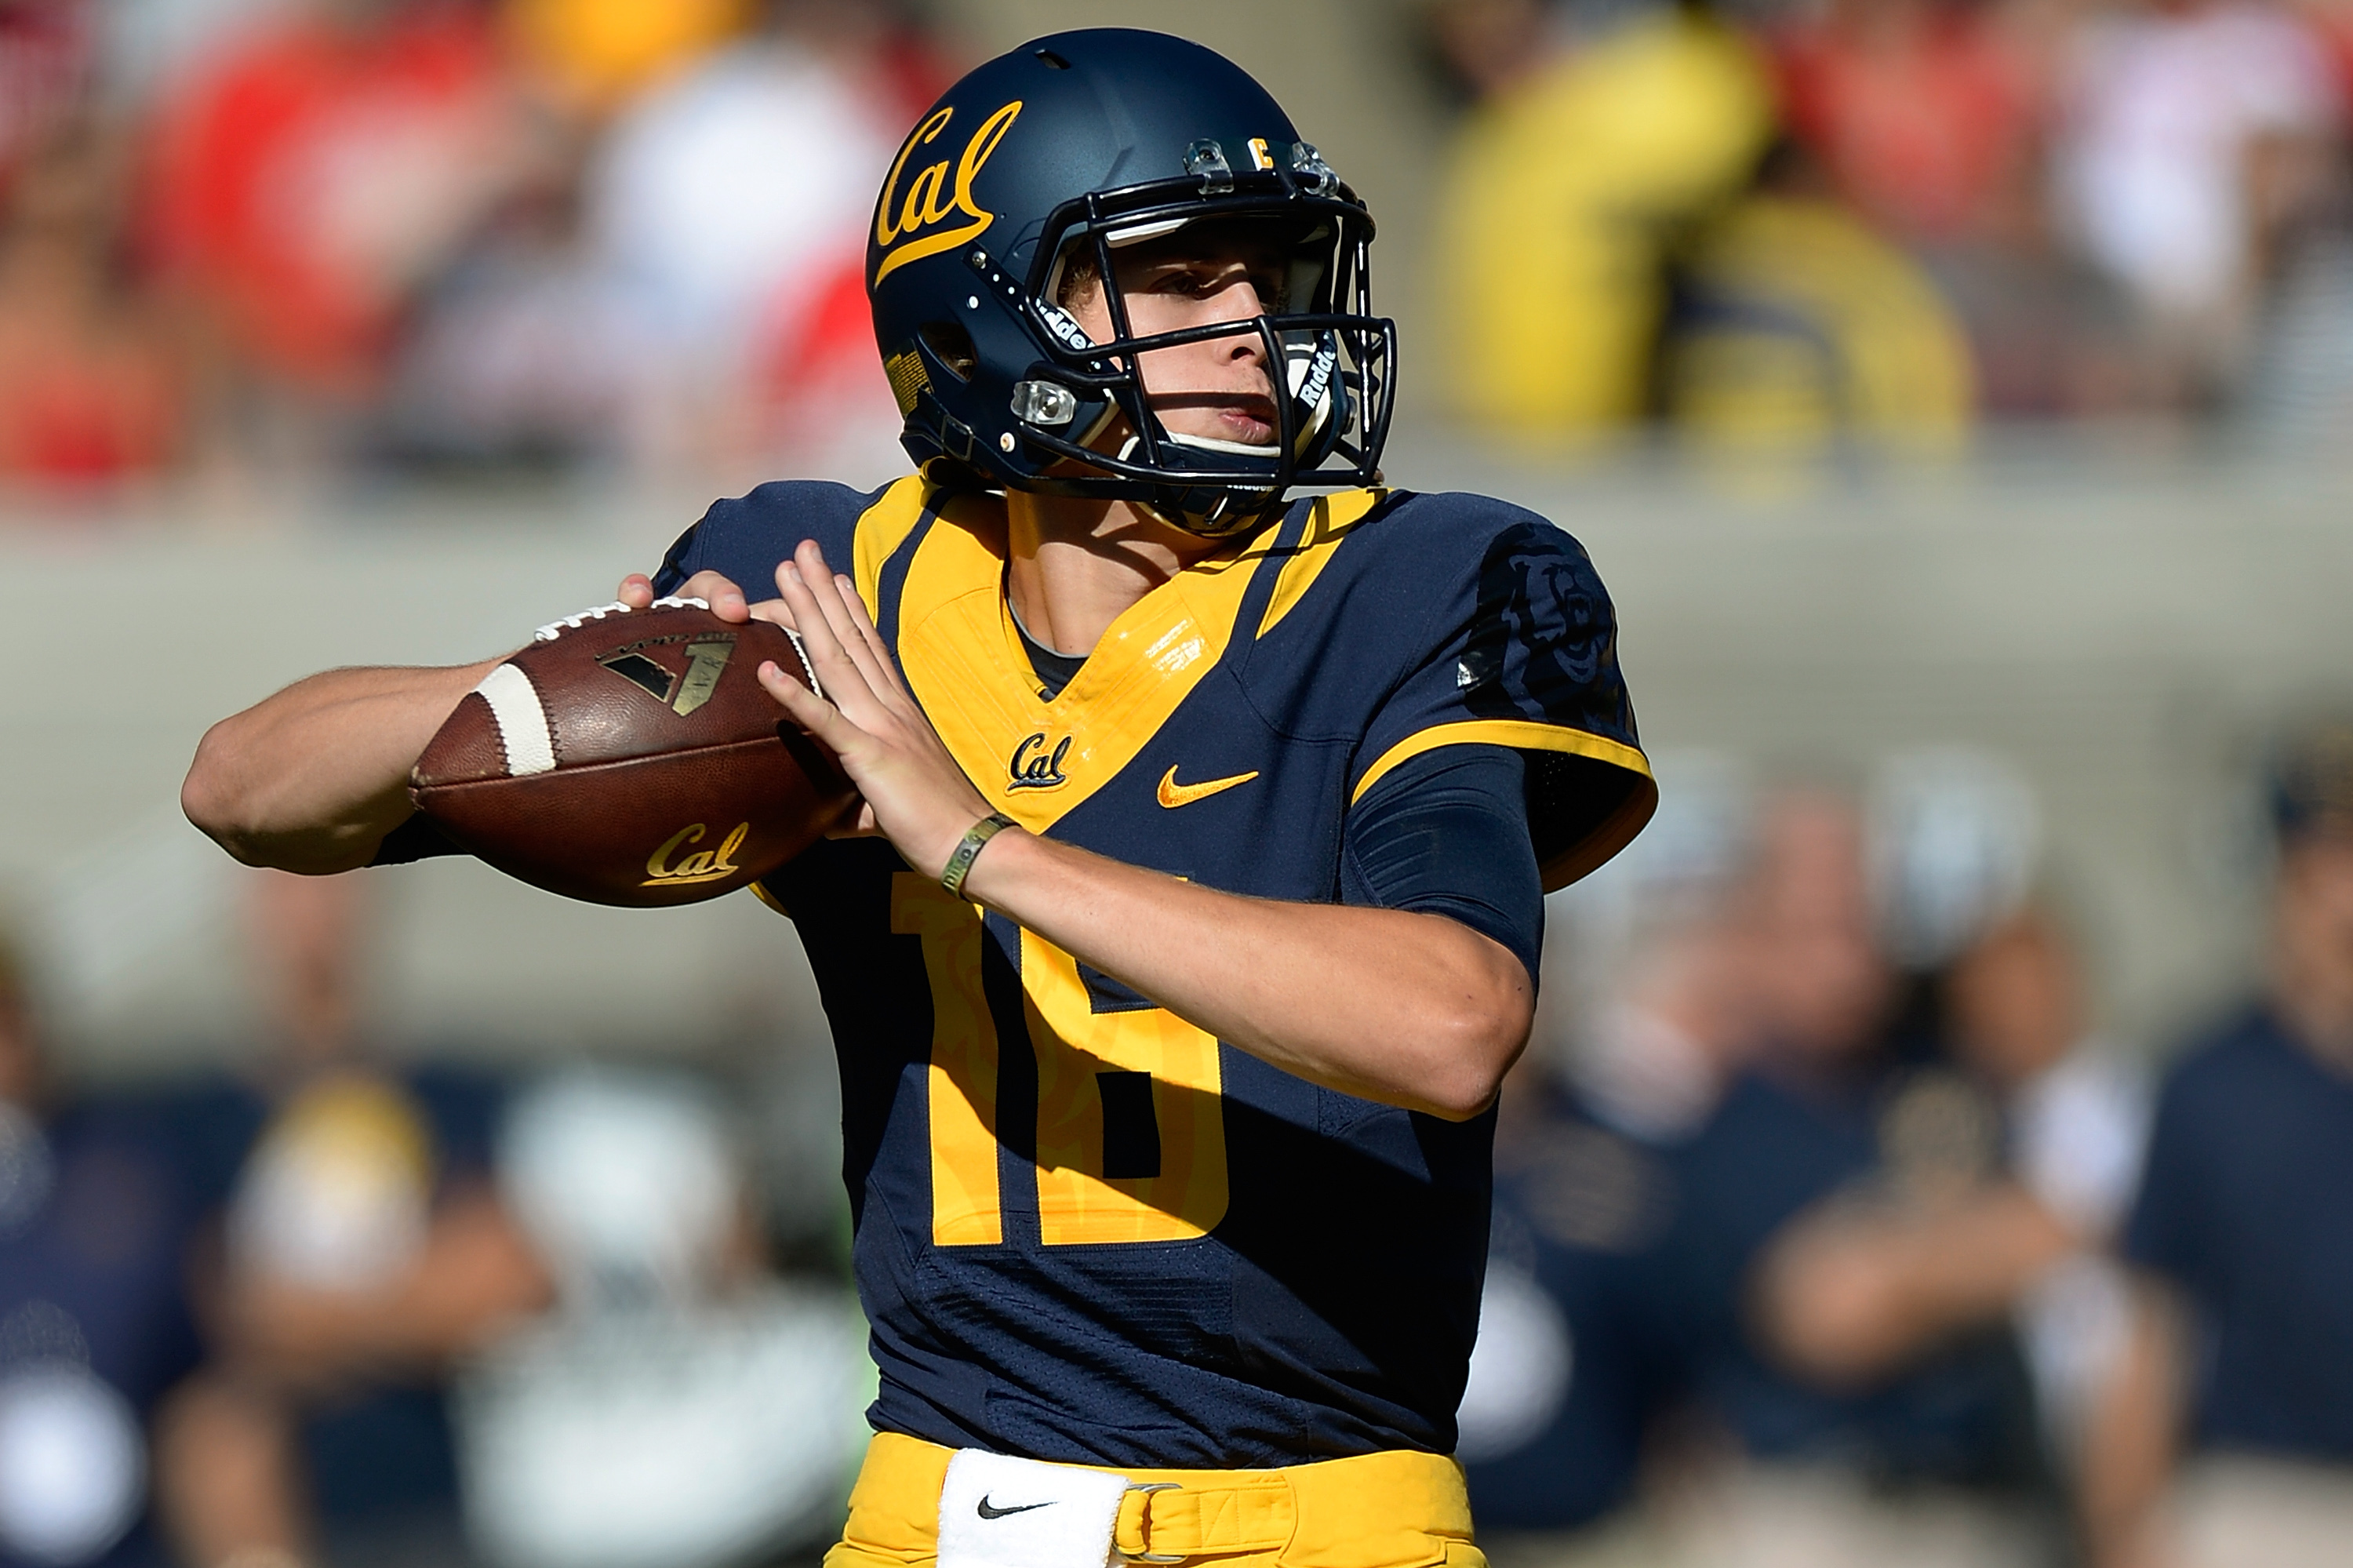 Ohio State Vs Cal Jared Goff Has Much To Learn But He Will Be Special Bleacher Report Latest News Videos And Highlights